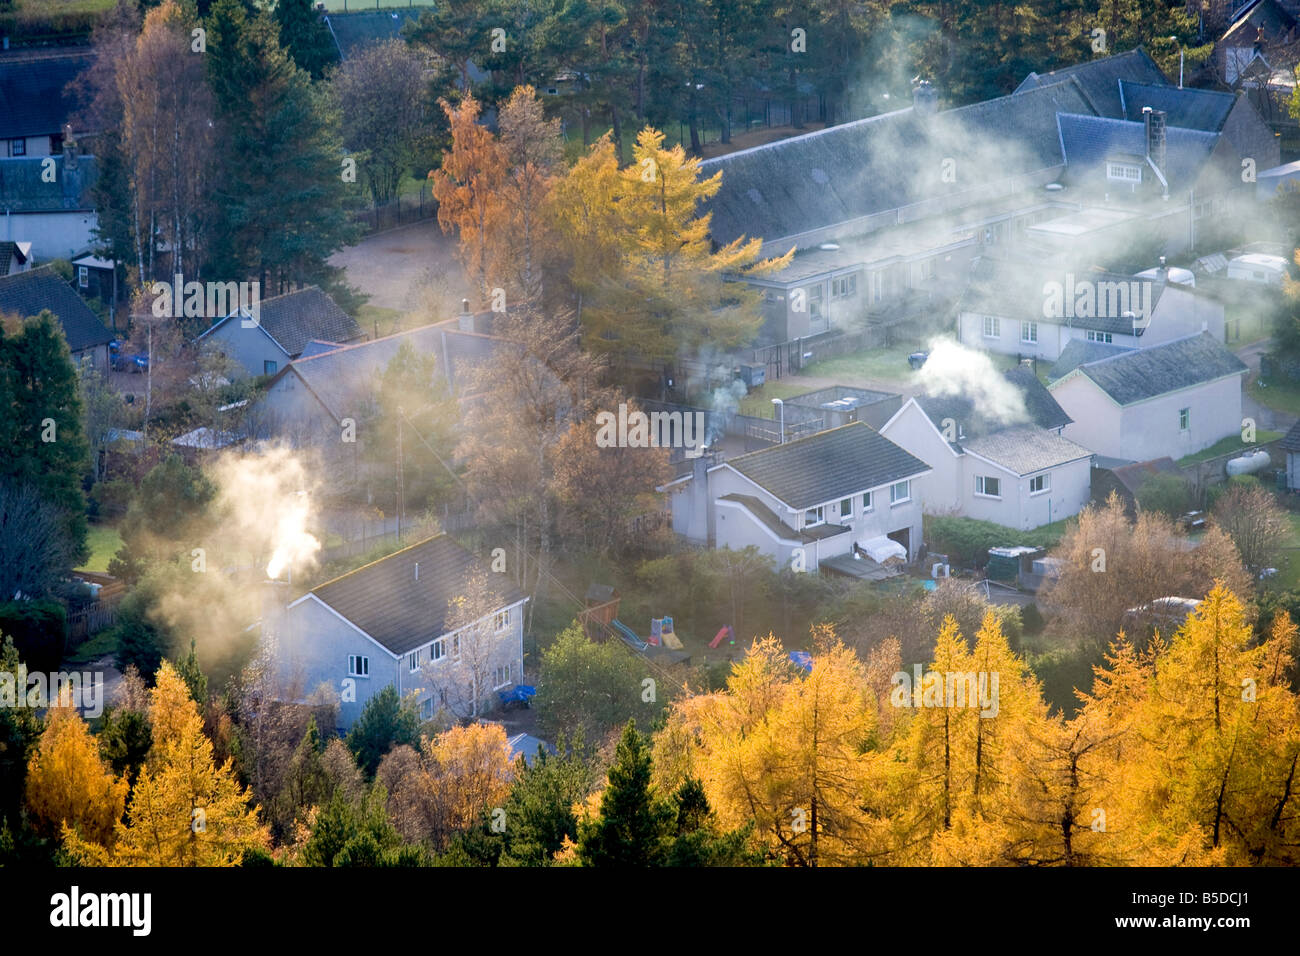 Smoking Chimneys, roofs, with Larch trees in Autumn Foliage.  The Scottish village of Braemar, Aberdeenshire, Cairngorms - Stock Image